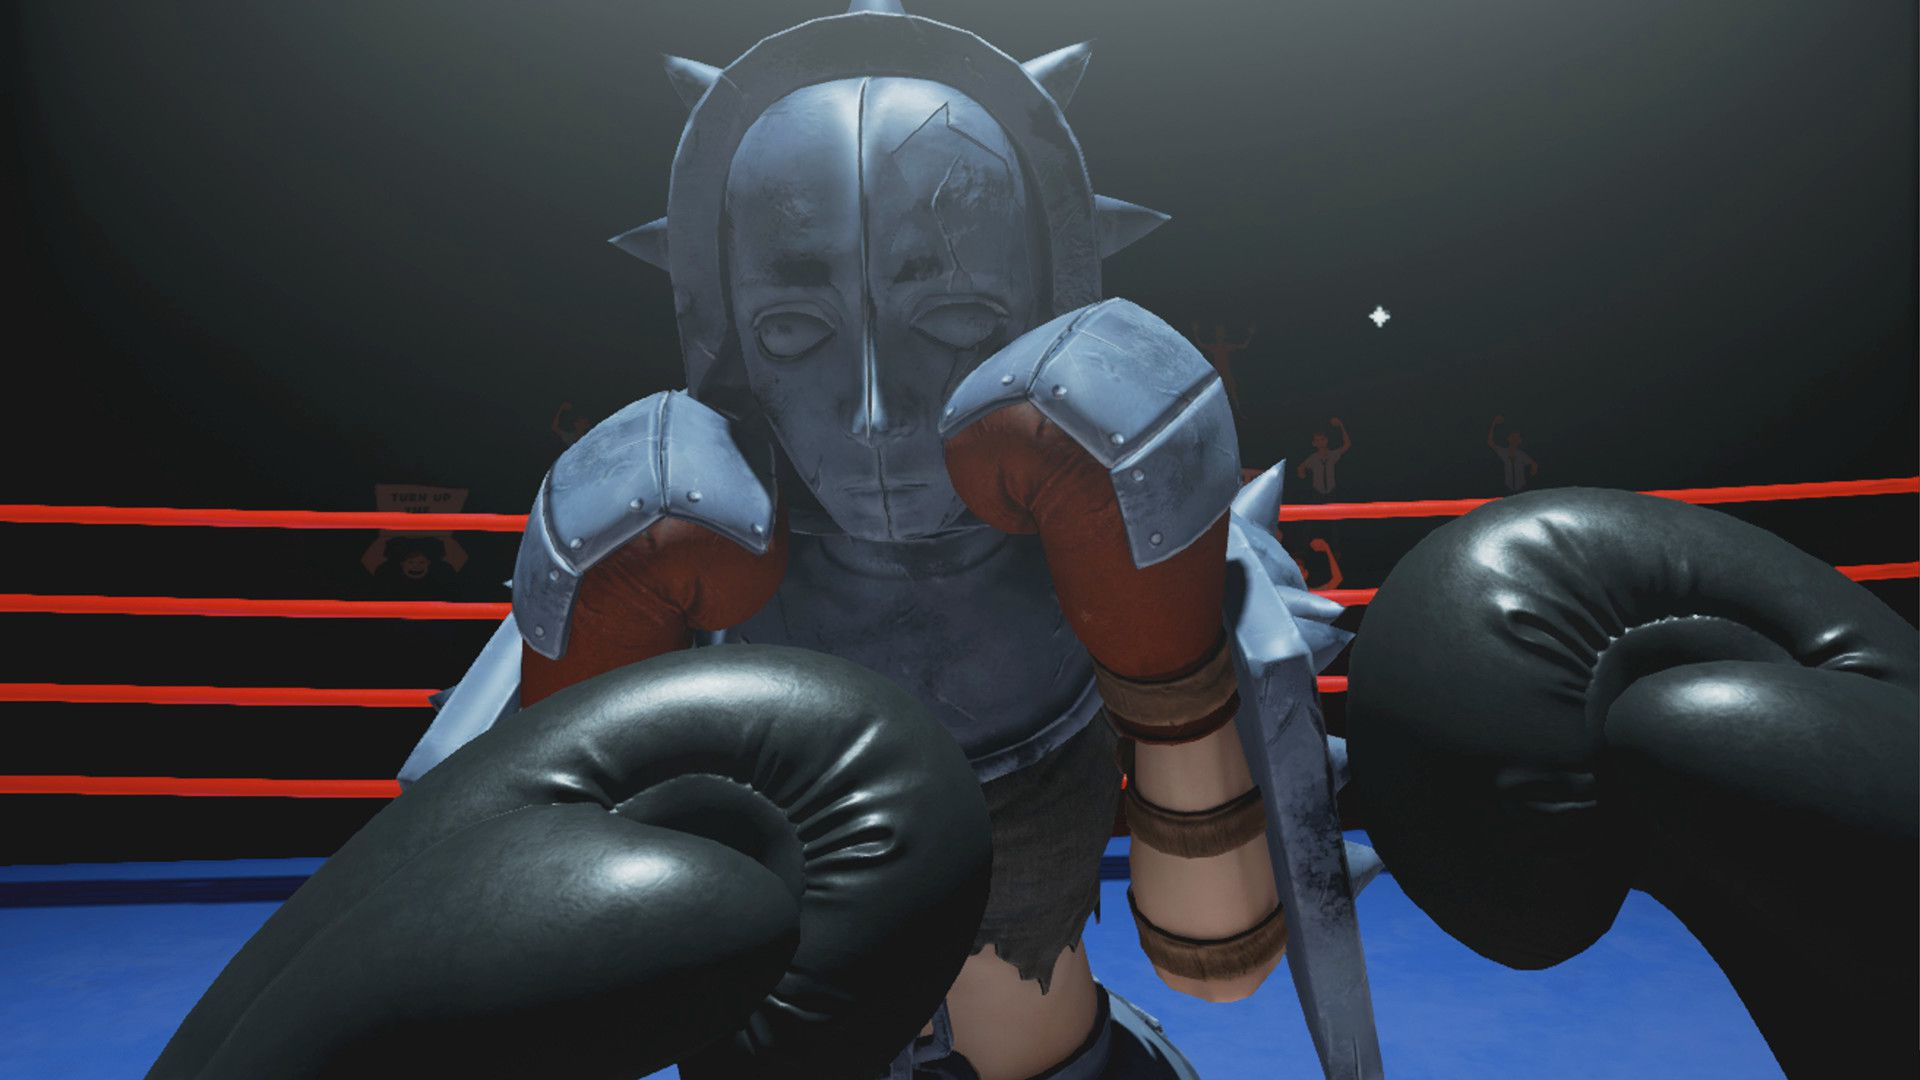 Black boxing gloves hover in front of a figure wearing strange grey armor inside a boxing ring.